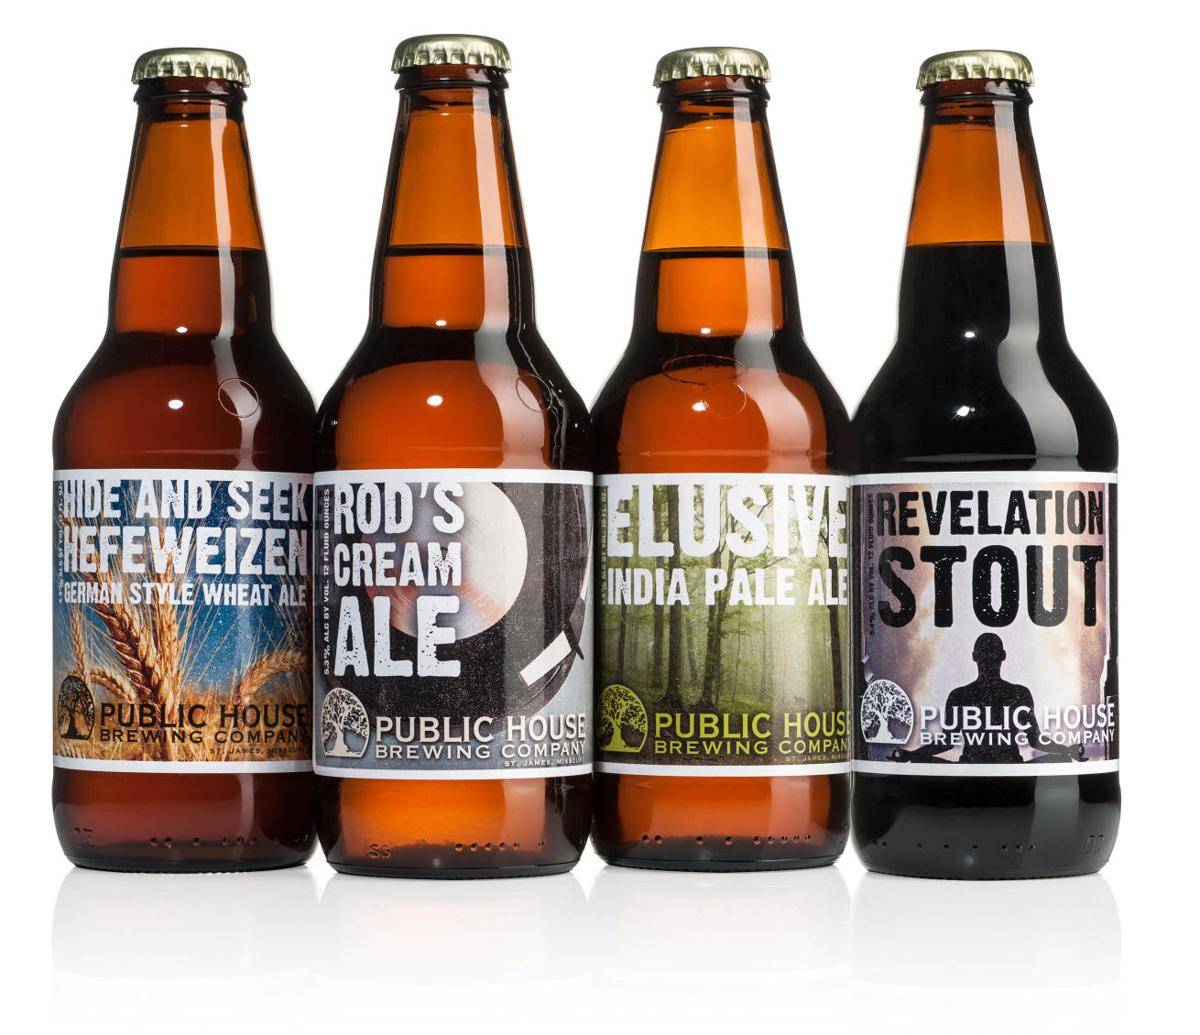 Public House Brewing Co. Beers